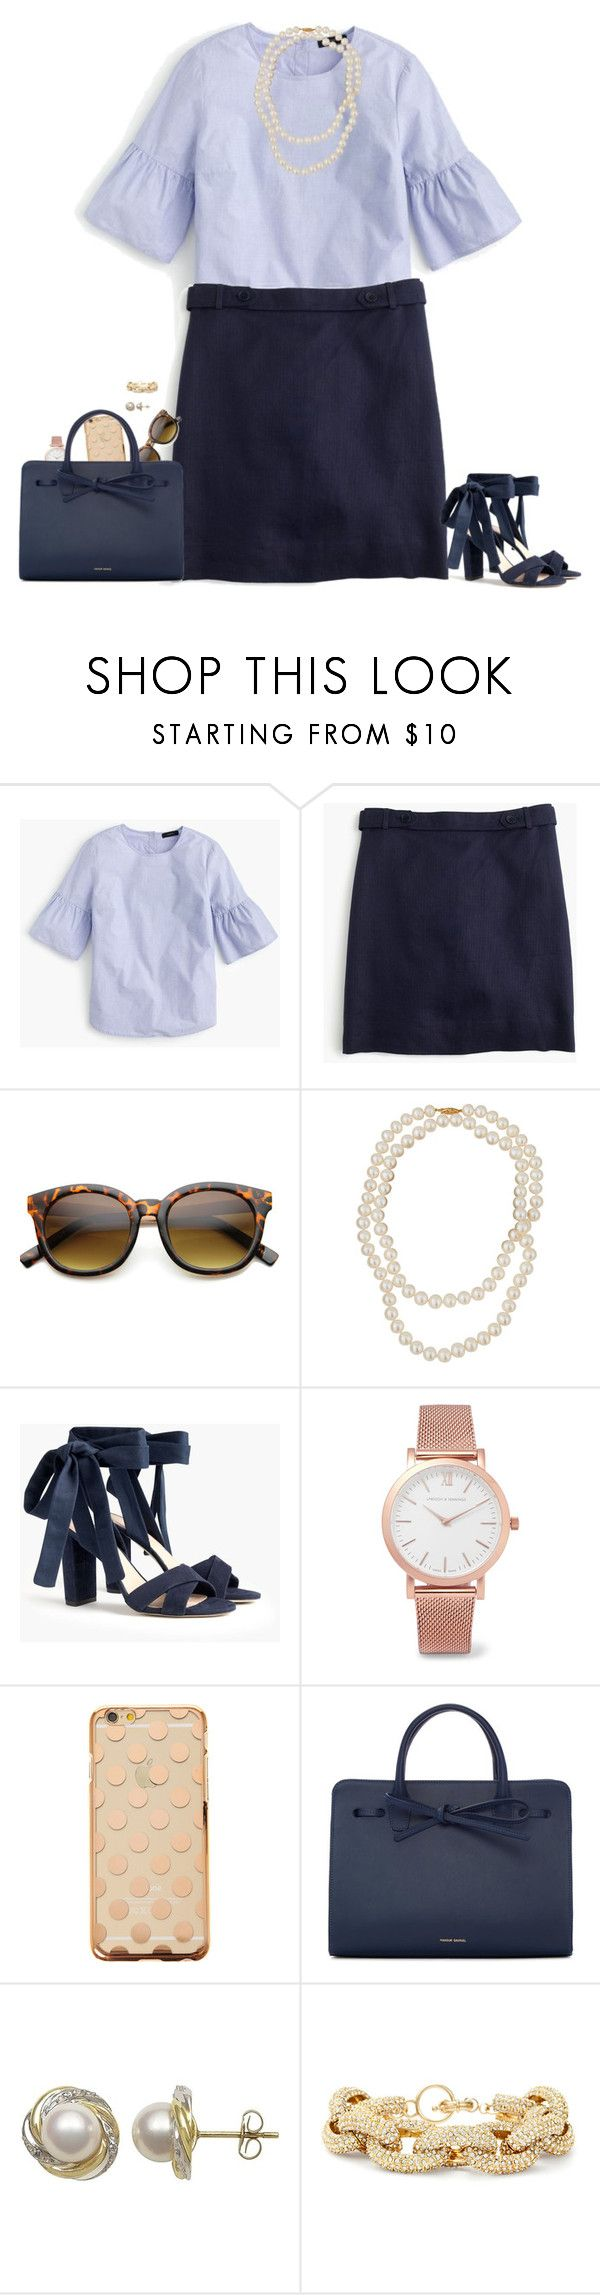 """""""Very Sarah Vickers"""" by sc-prep-girl ❤ liked on Polyvore featuring J.Crew, ZeroUV, Belpearl, Larsson & Jennings, Mansur Gavriel and Slate & Willow"""